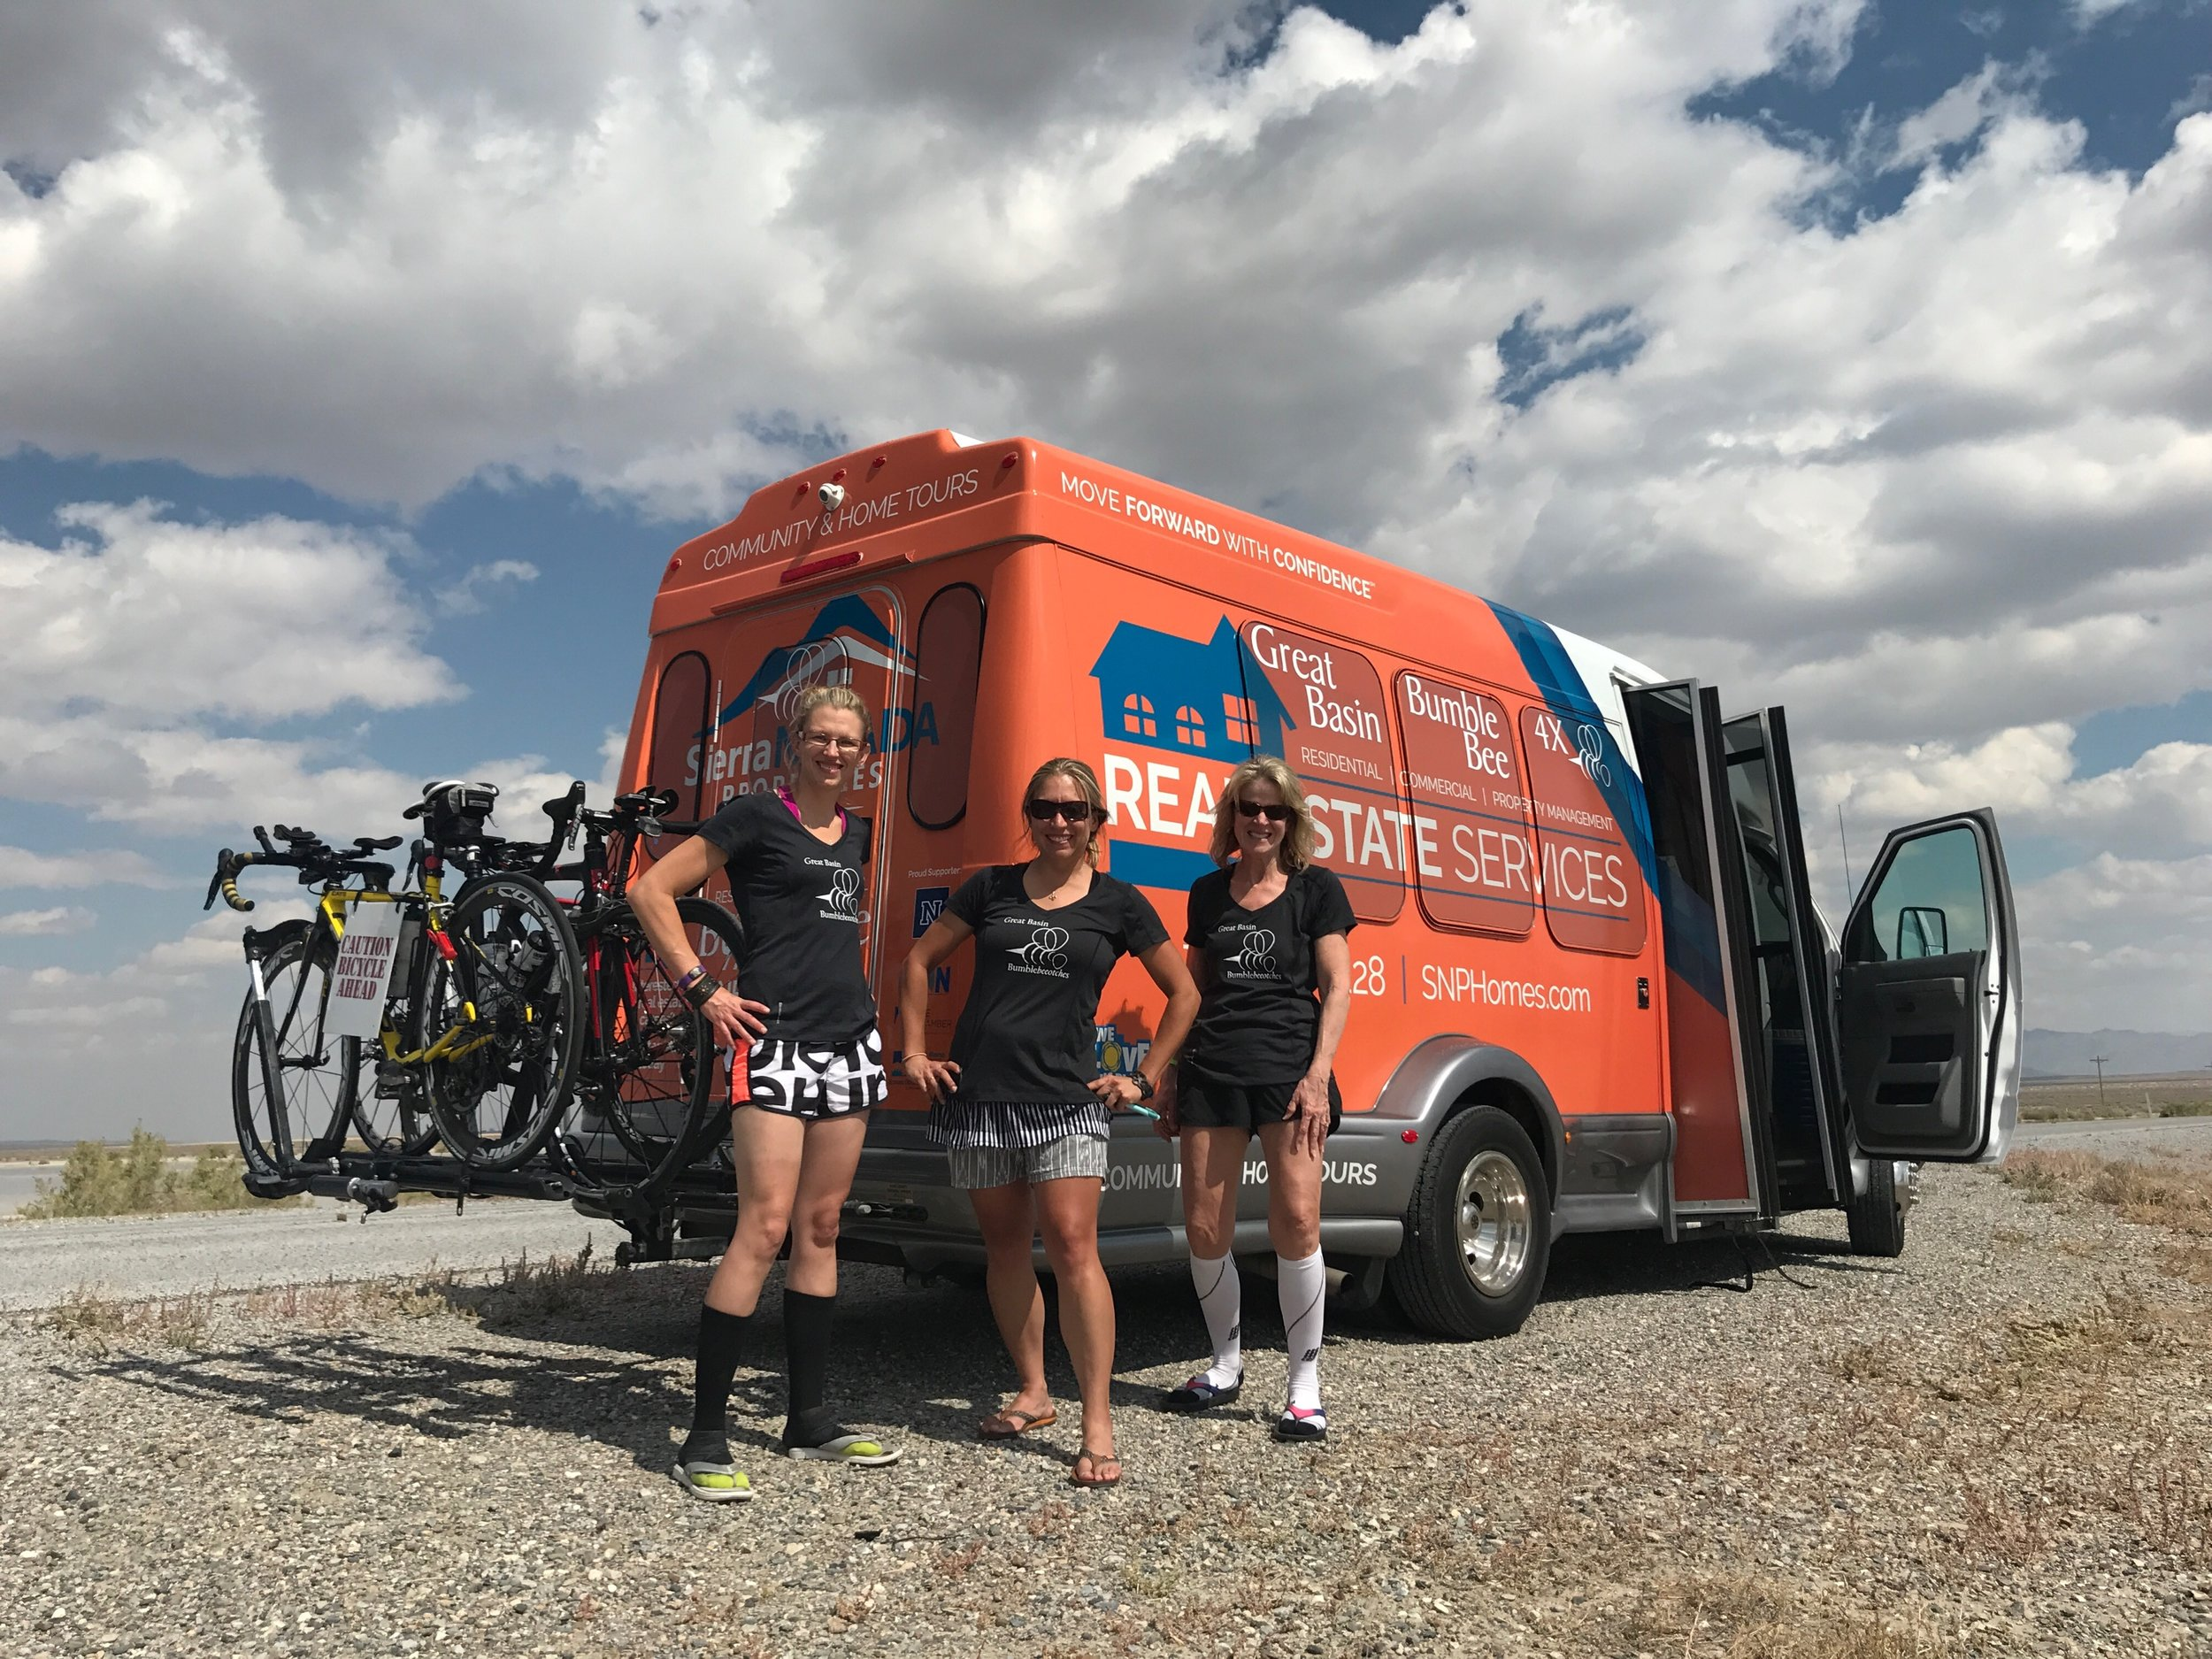 Team shot with the orange bus graciously donated by Sierra Nevada Properties. Katie (not pictured) is riding the 106-mile third stage of the race. Left to right: Rhonda Y., Rebecca E. and crew Linda.